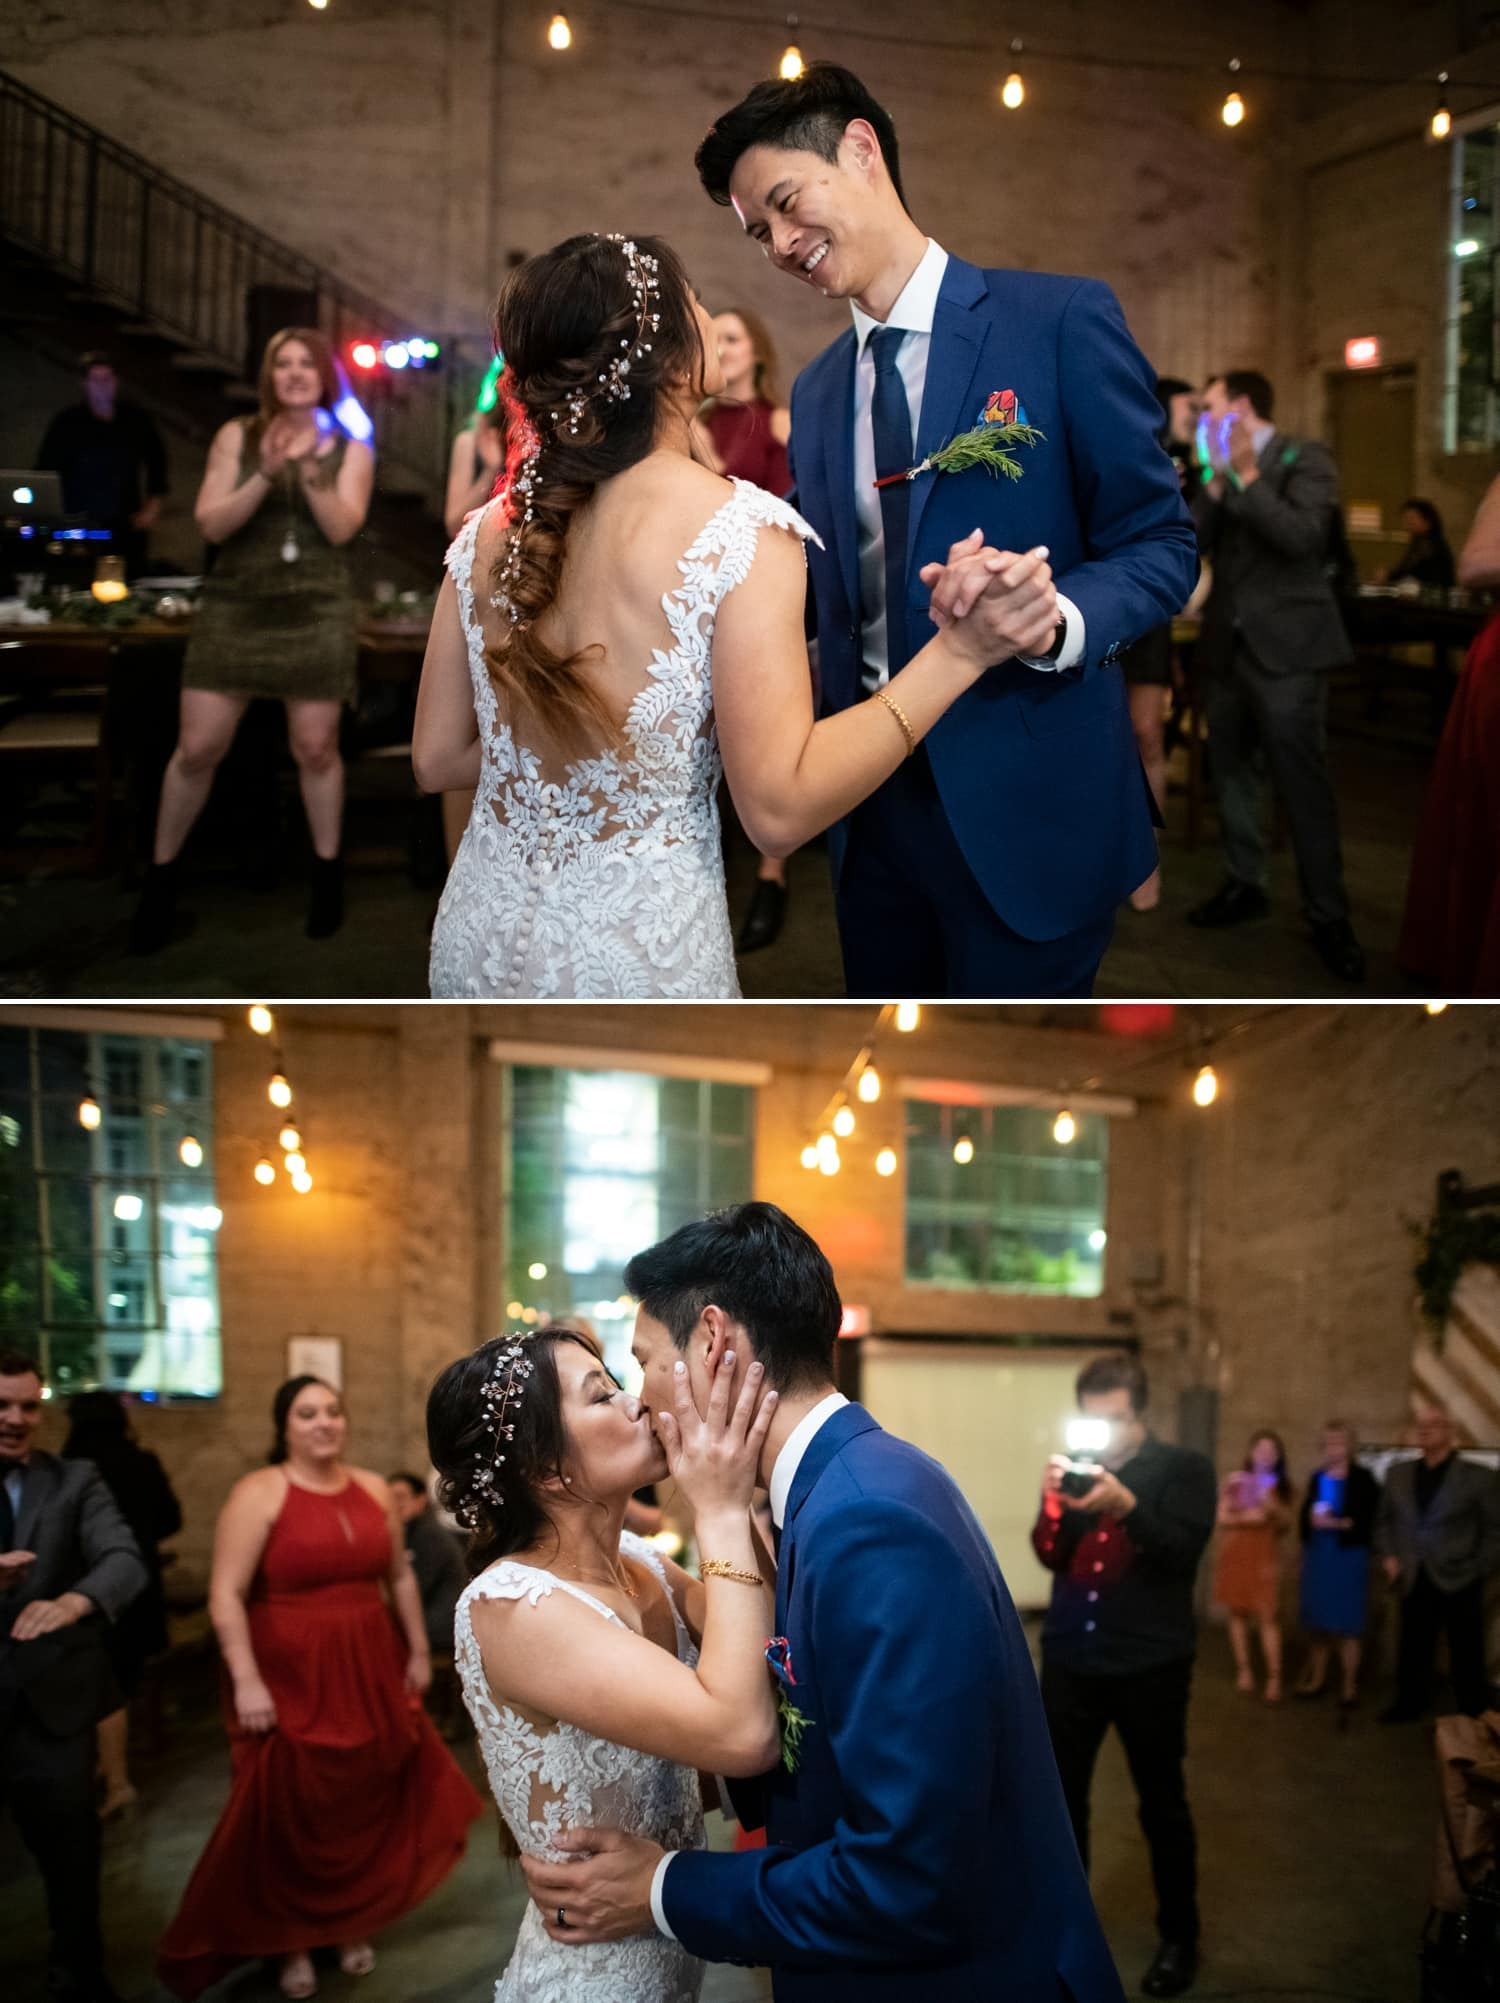 Bride and groom's last dance at their wedding in San Diego.